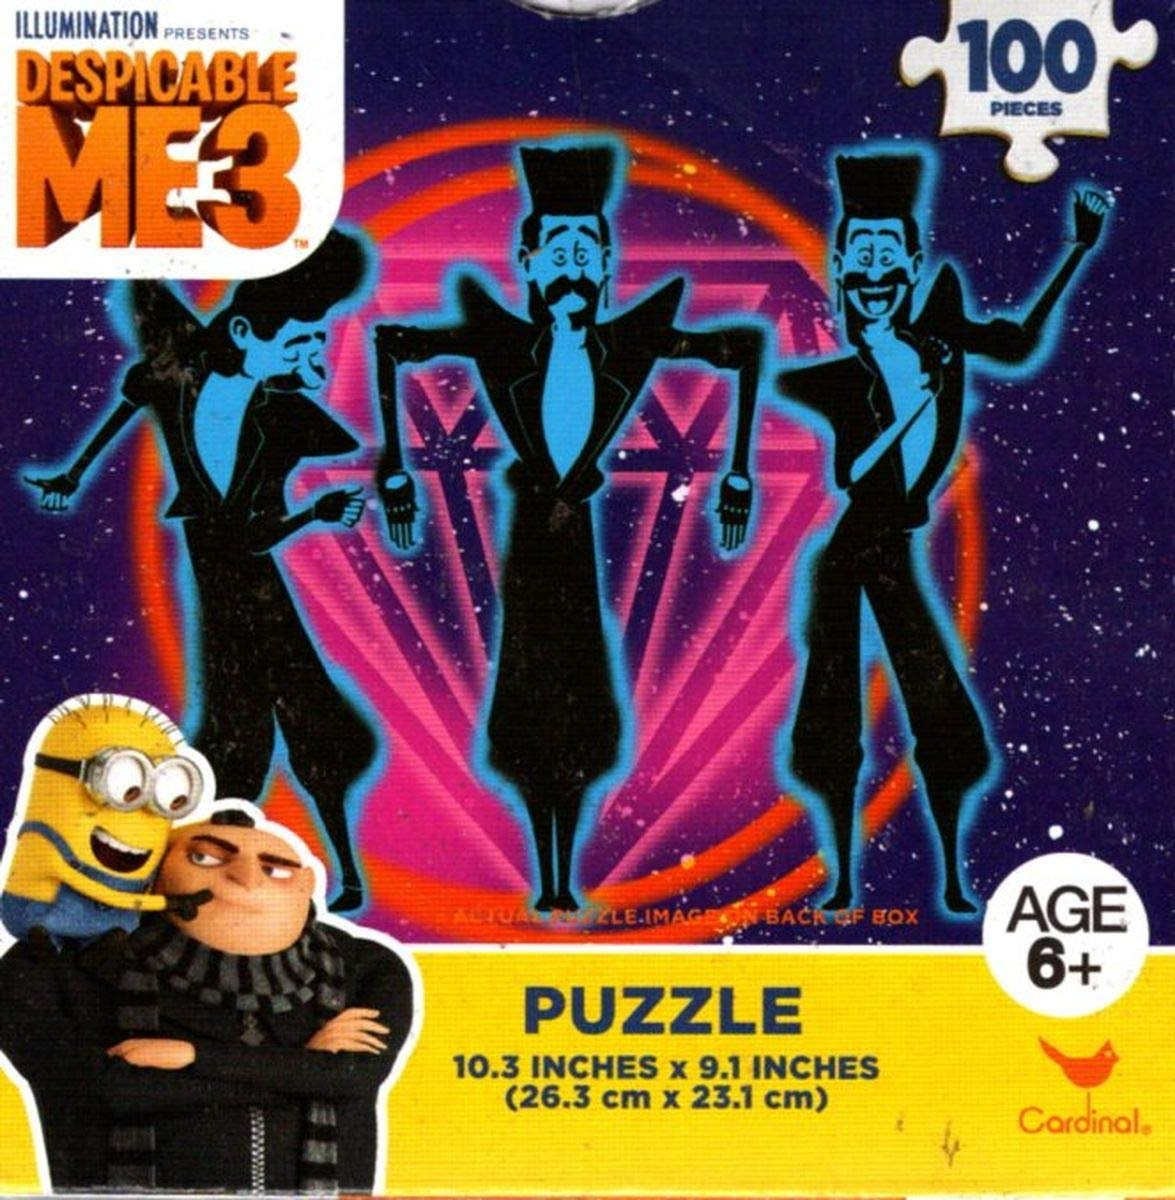 Despicable Me 3 - 100 Piece Jigsaw Puzzle - v4